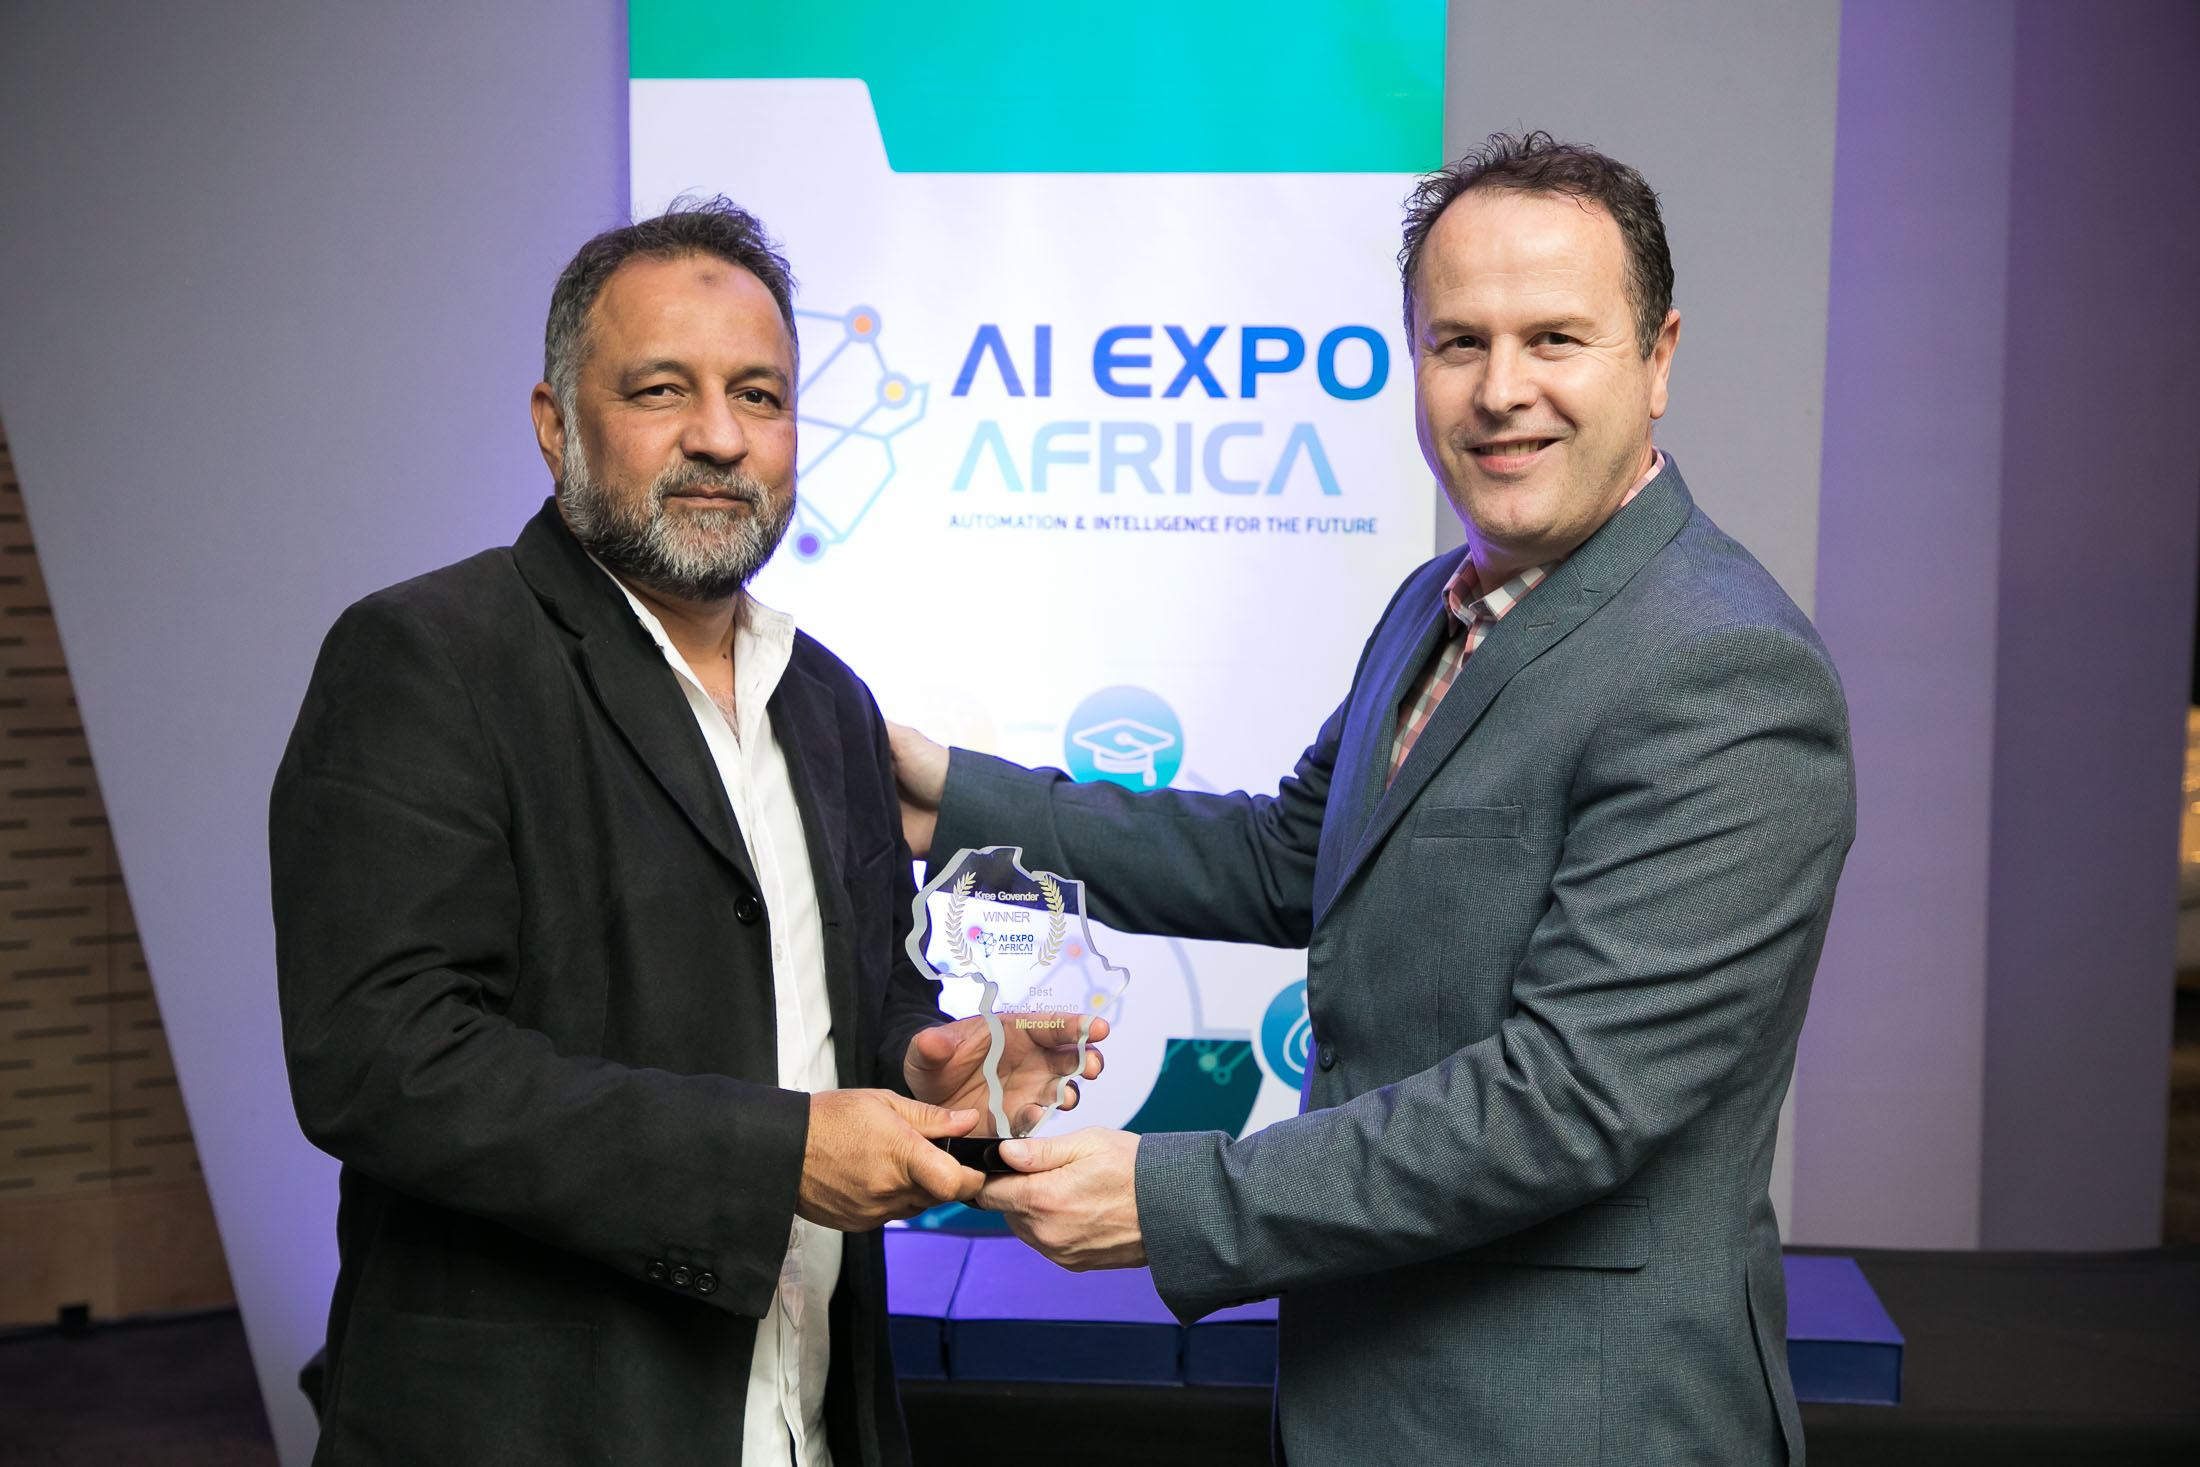 AI Expo Africa Awards